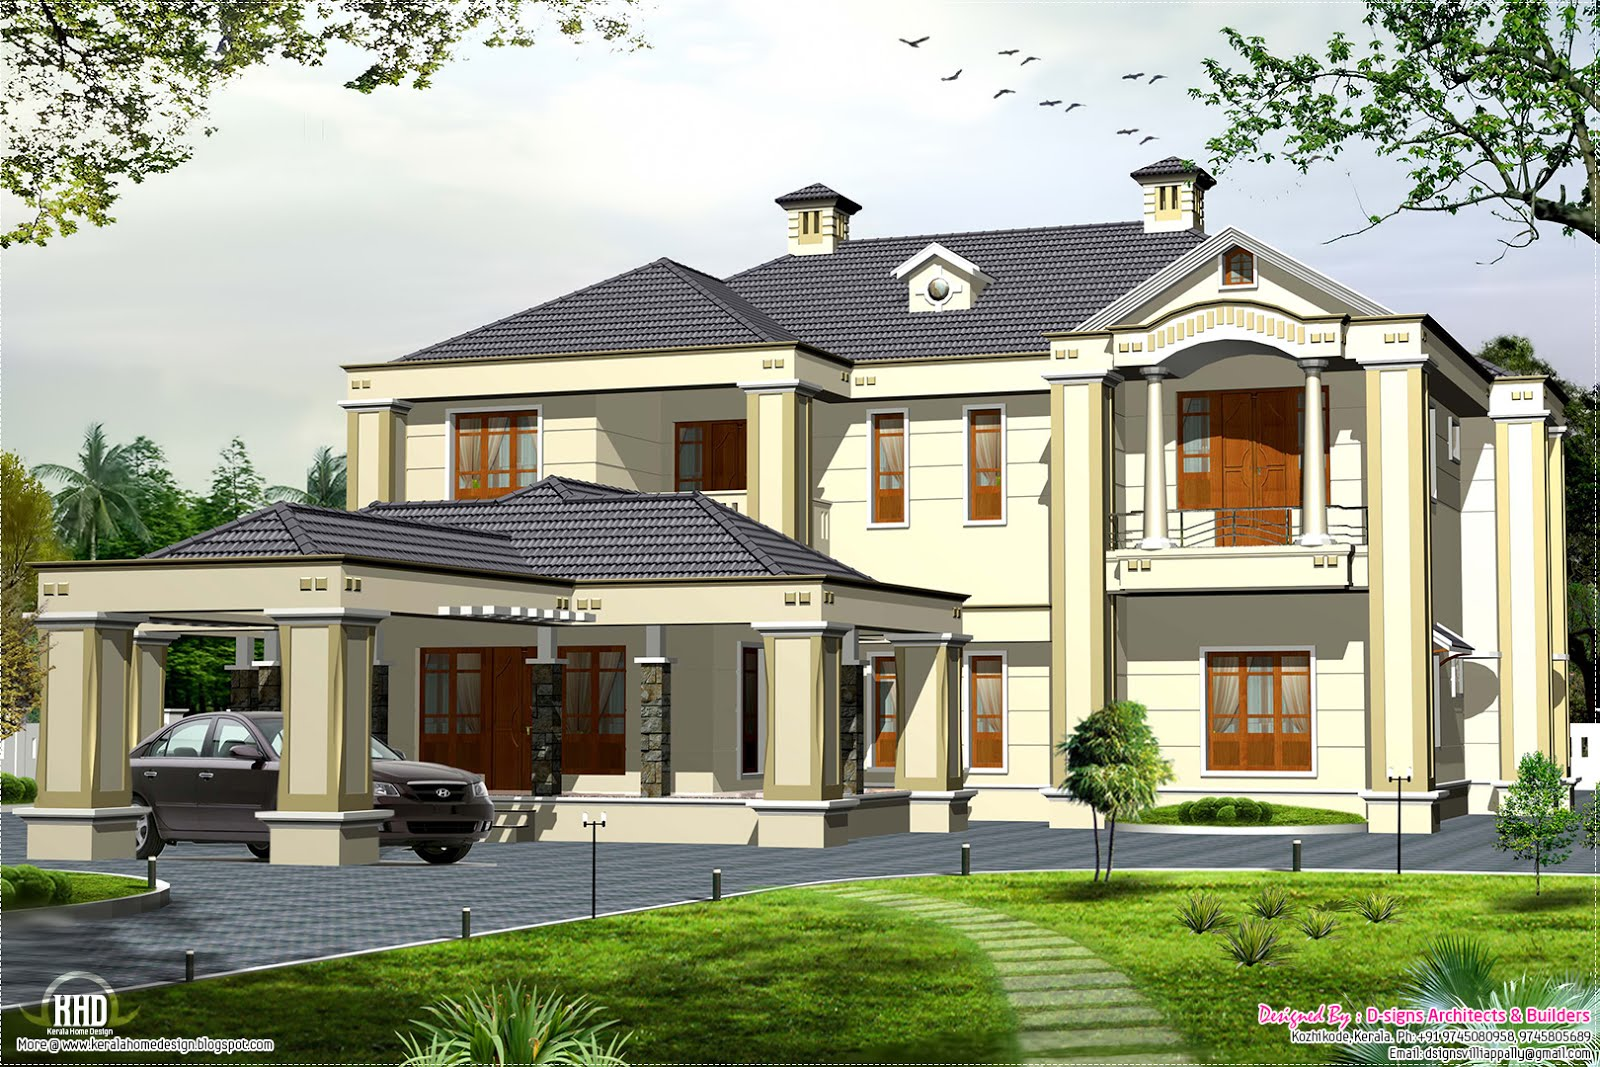 Colonial style 5 bedroom victorian style house enter for Home design style names